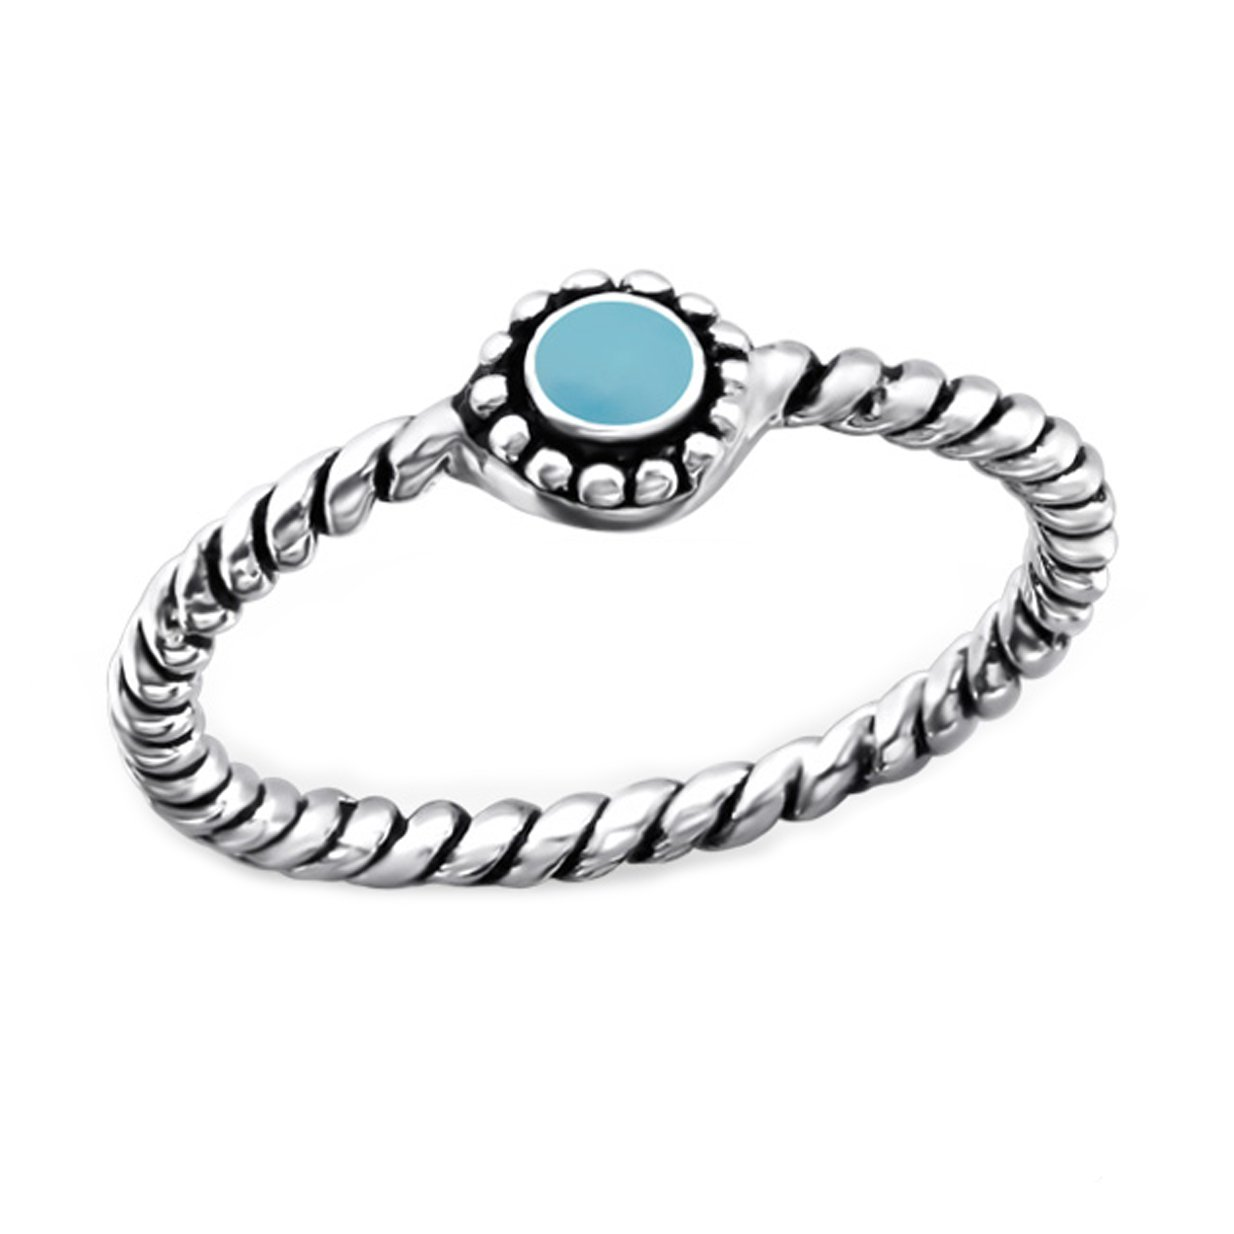 Midi Ring Sterling Silver 925 Blue Turquoise Boho Vintage Antique Style US Size 3.5 (E23804)